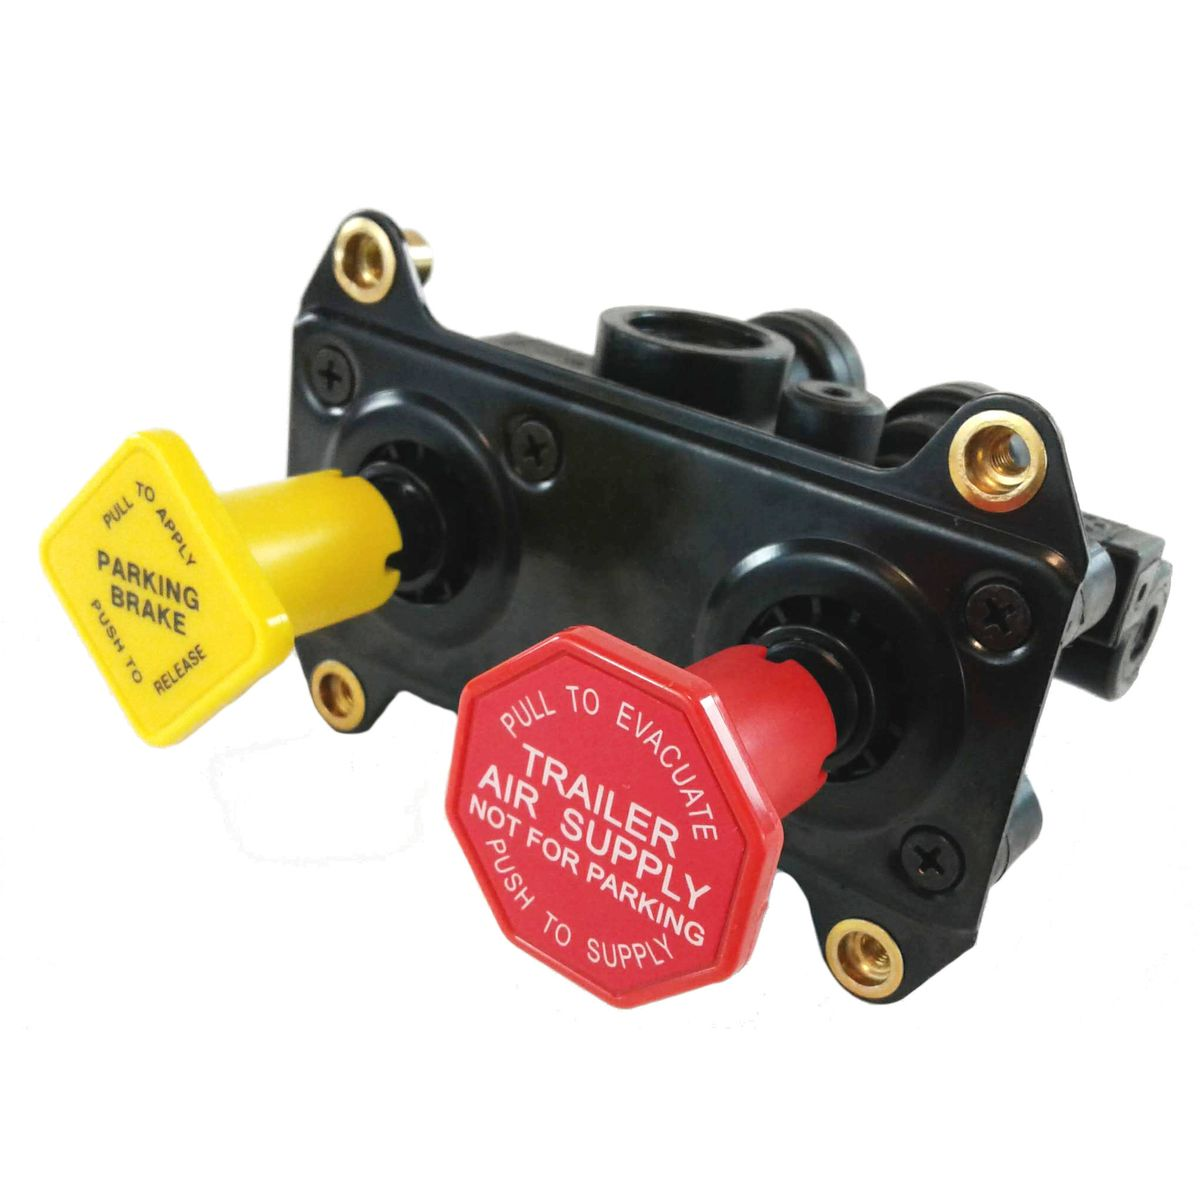 "MV-3 Hand Operated Push/Pull Tractor-Trailer Dash Control Brake Valve - 3/8"" Ports"